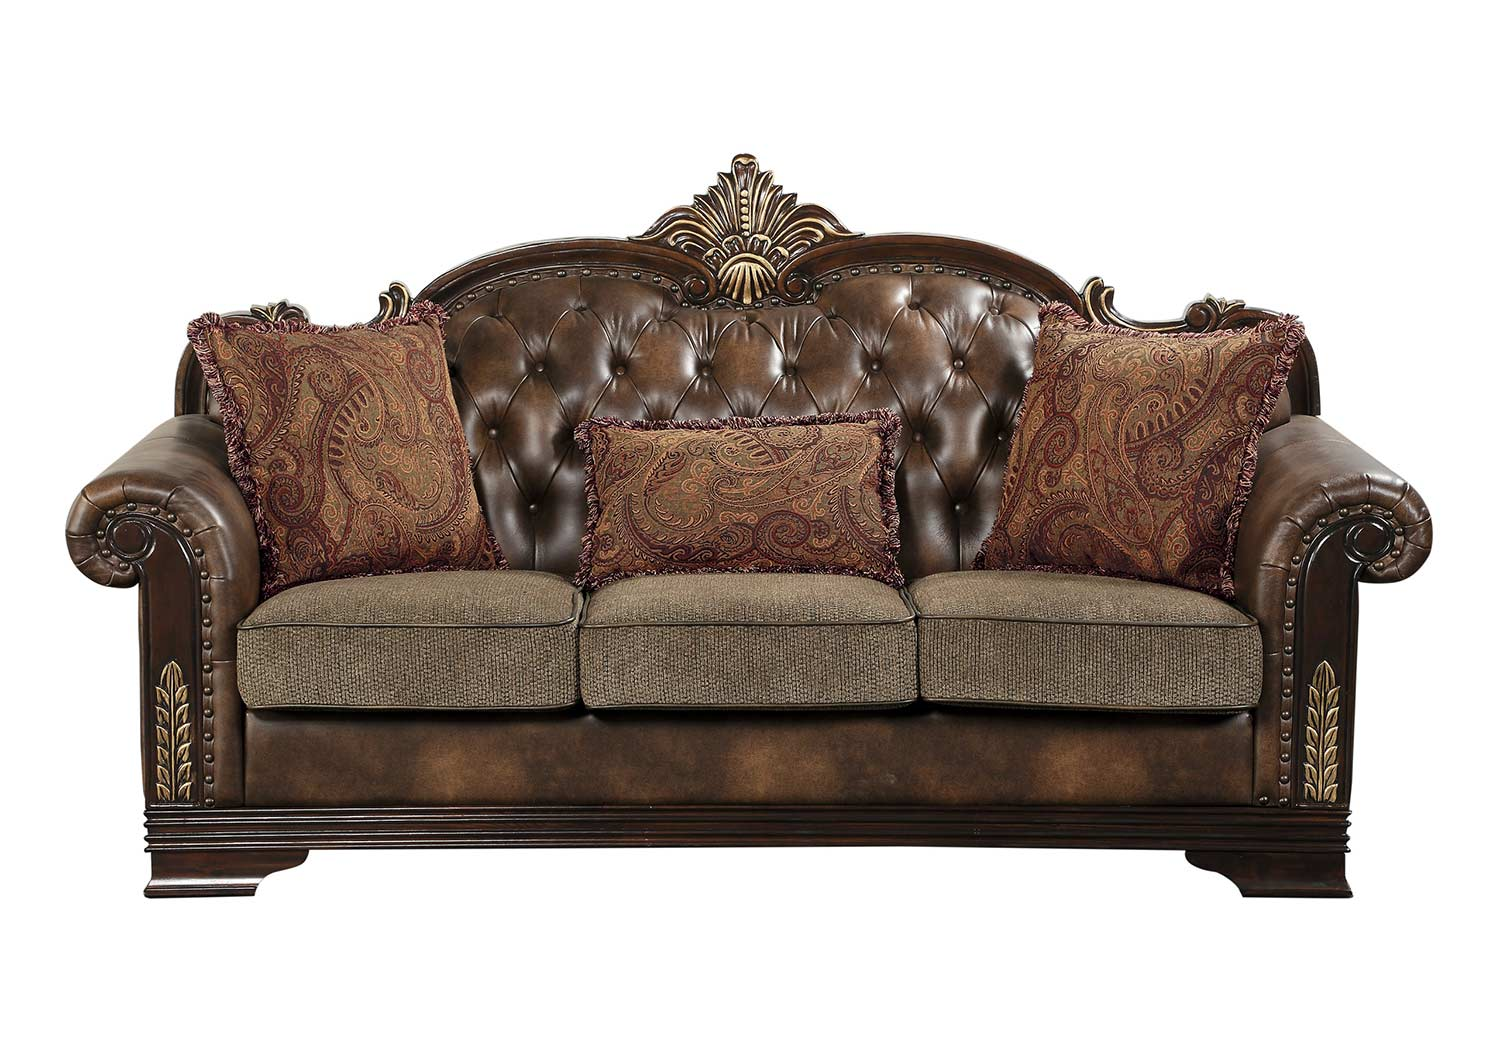 Homelegance Croydon Sofa - Brown